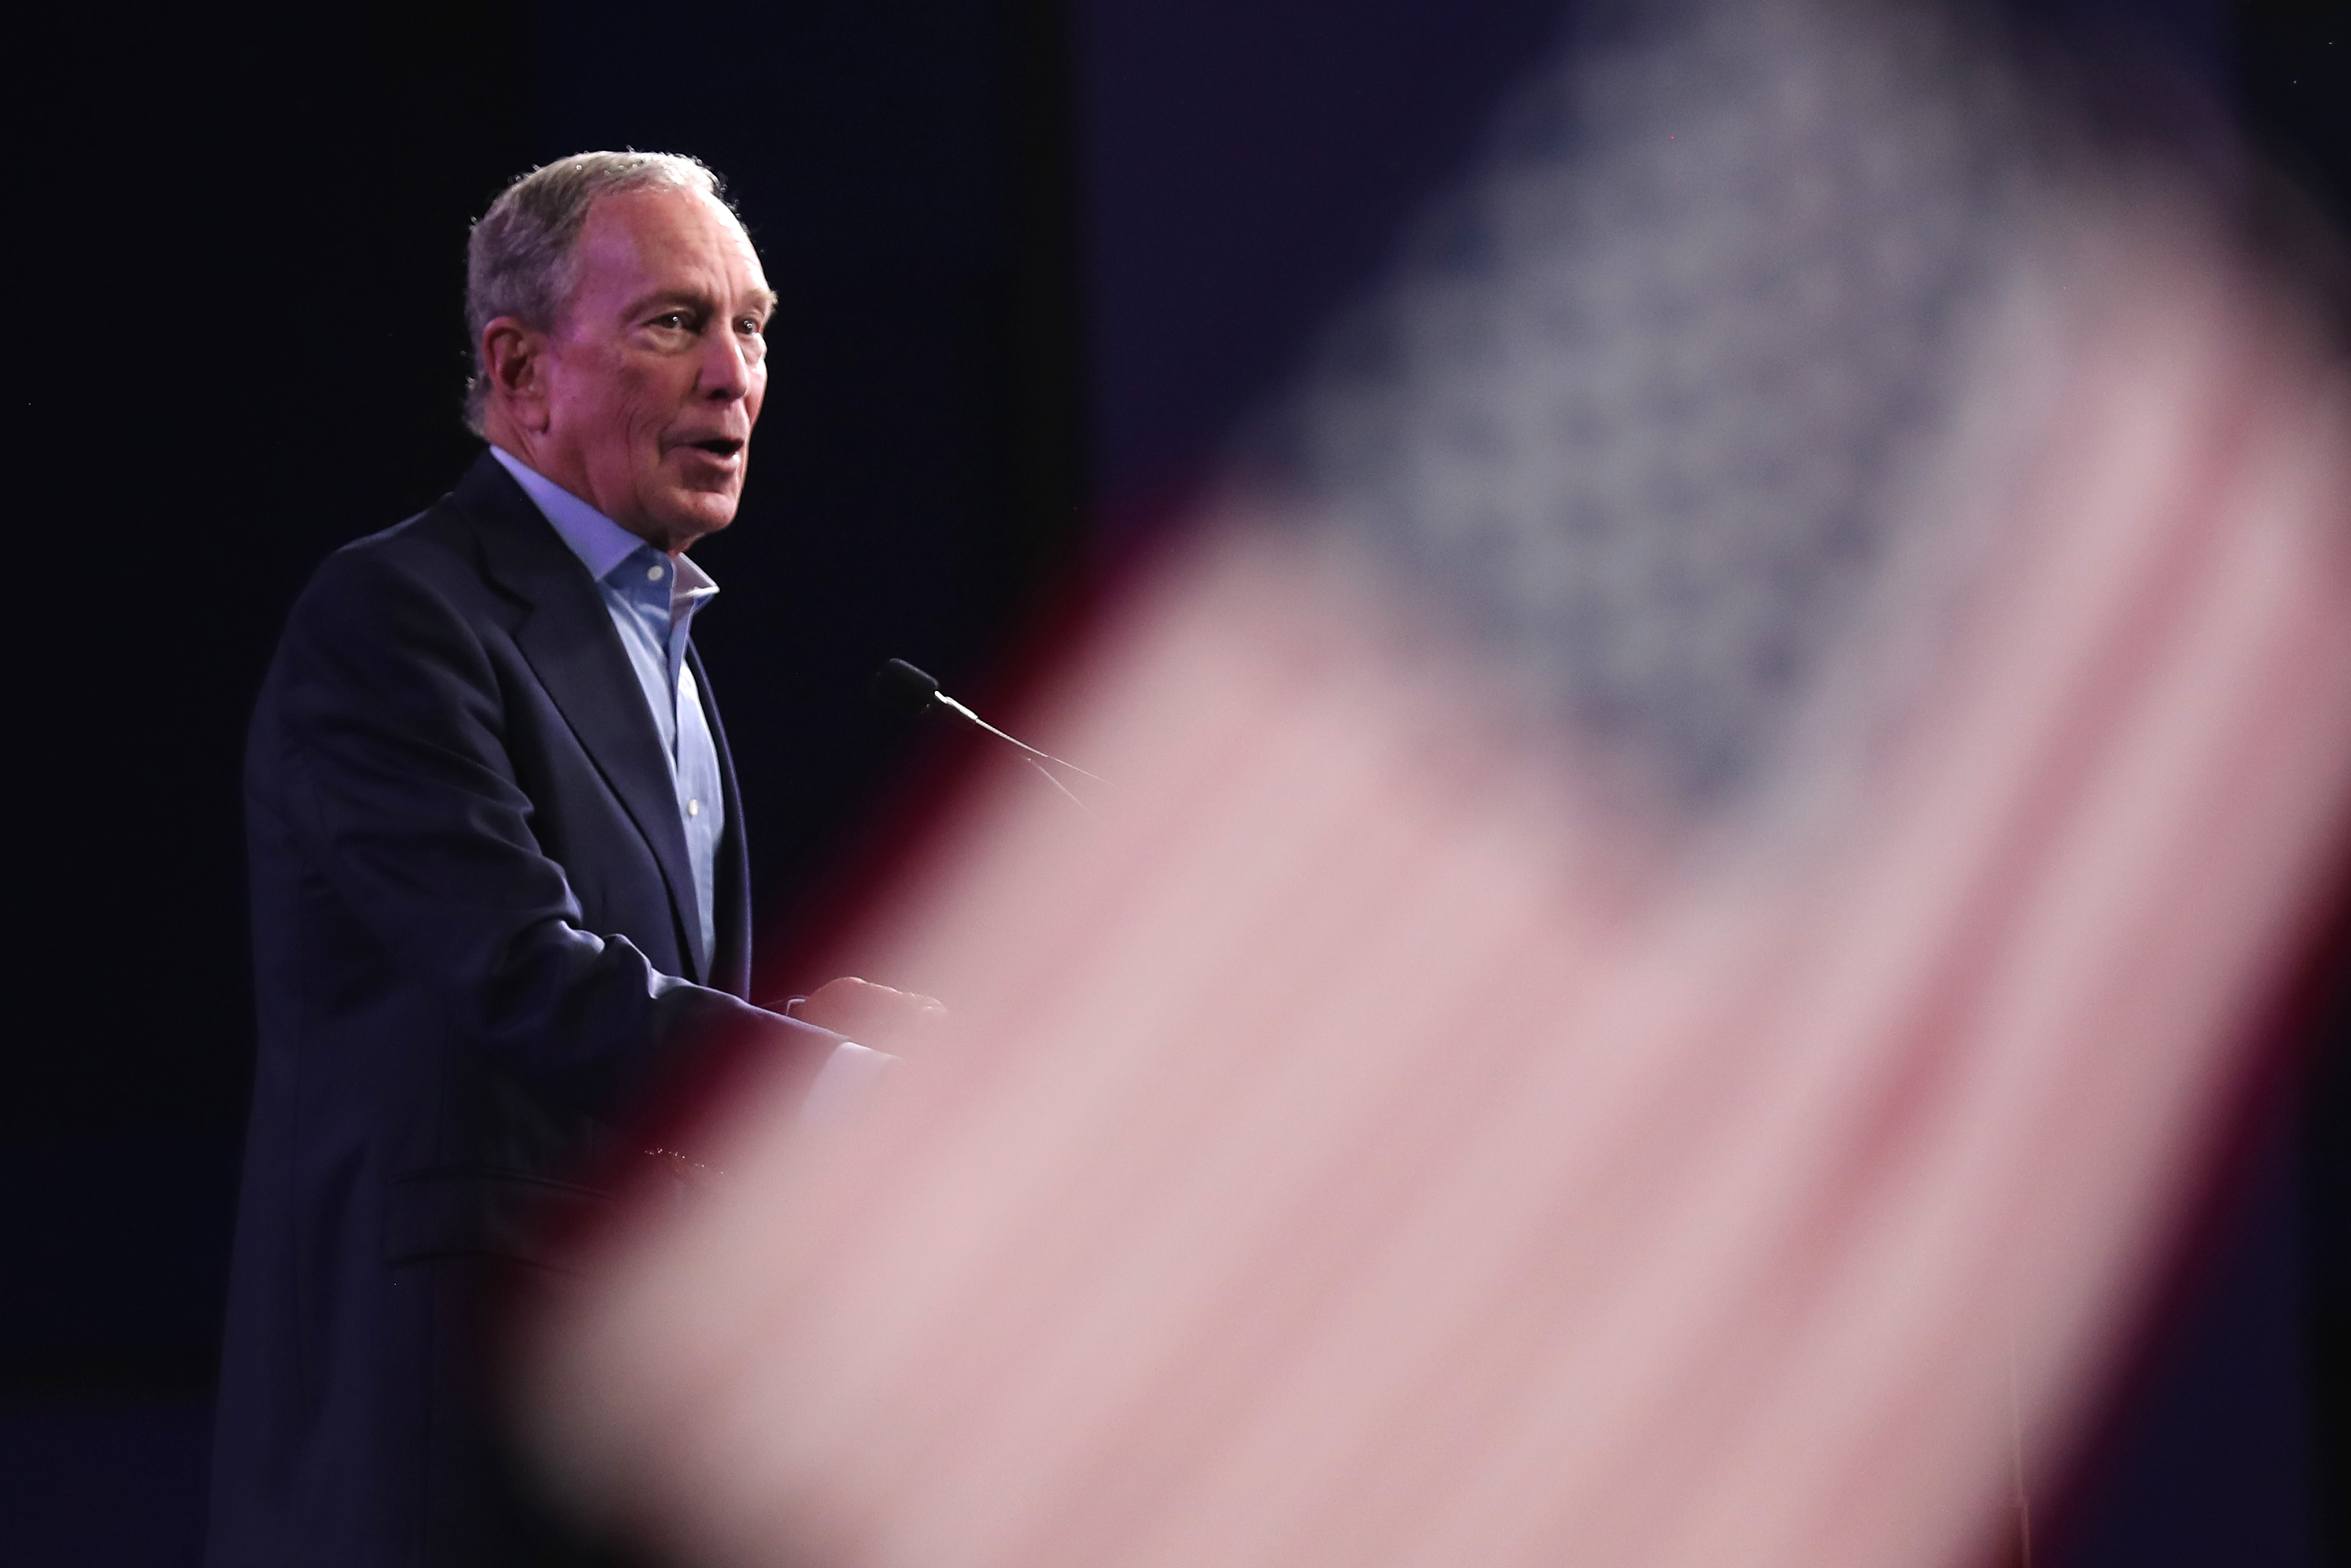 Bloomberg to speak at Democratic convention, angering some liberals